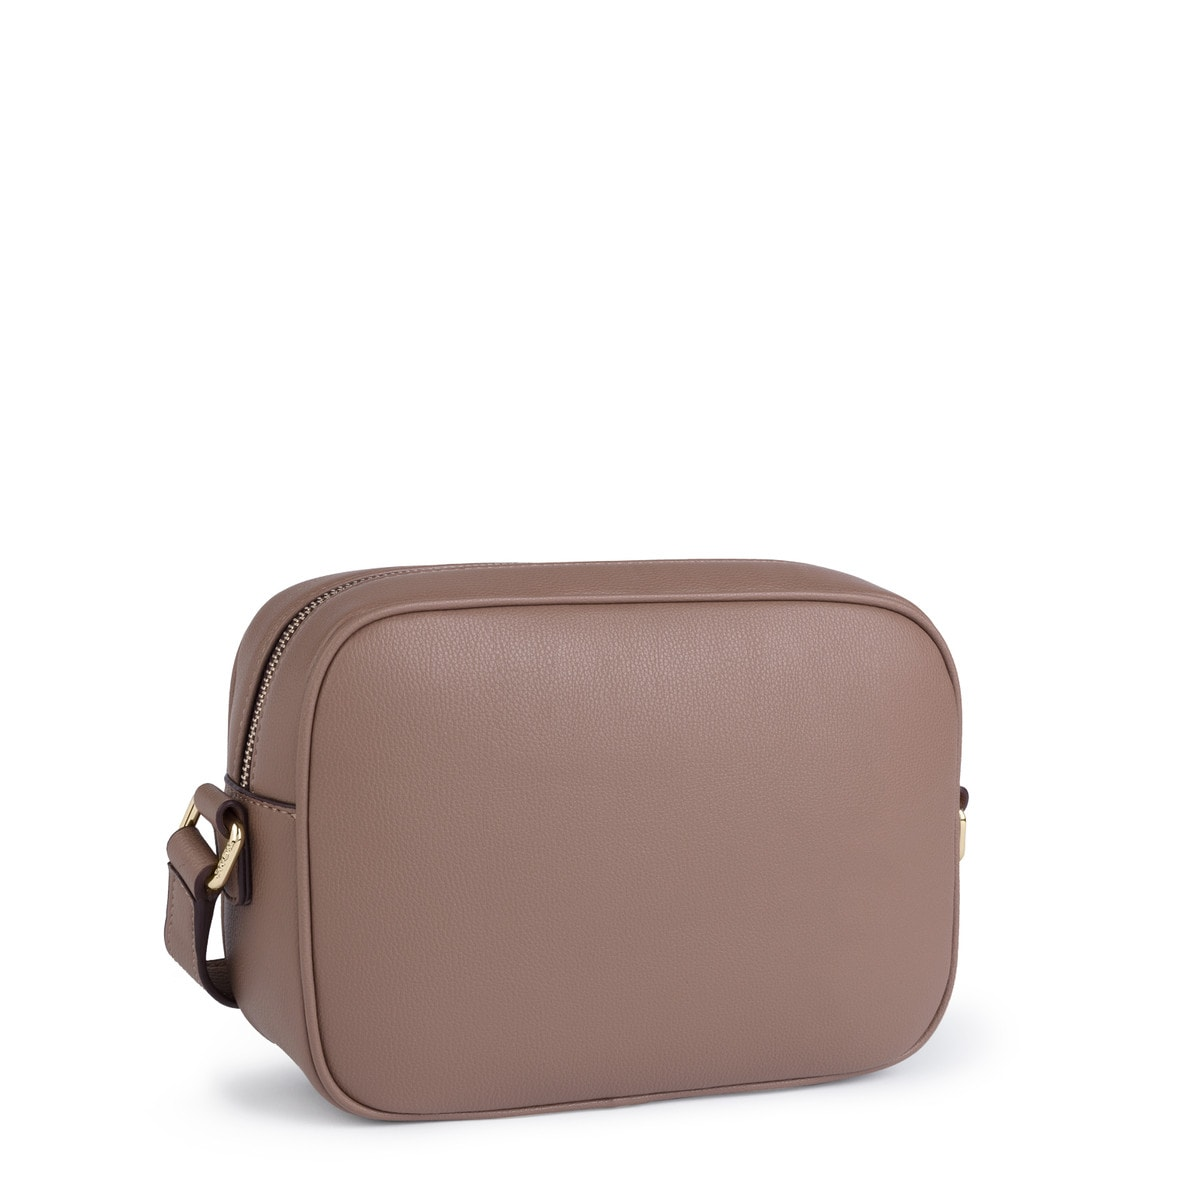 25a4b0953 Taupe colored Patch Maia Crossbody bag - Tous Site GB